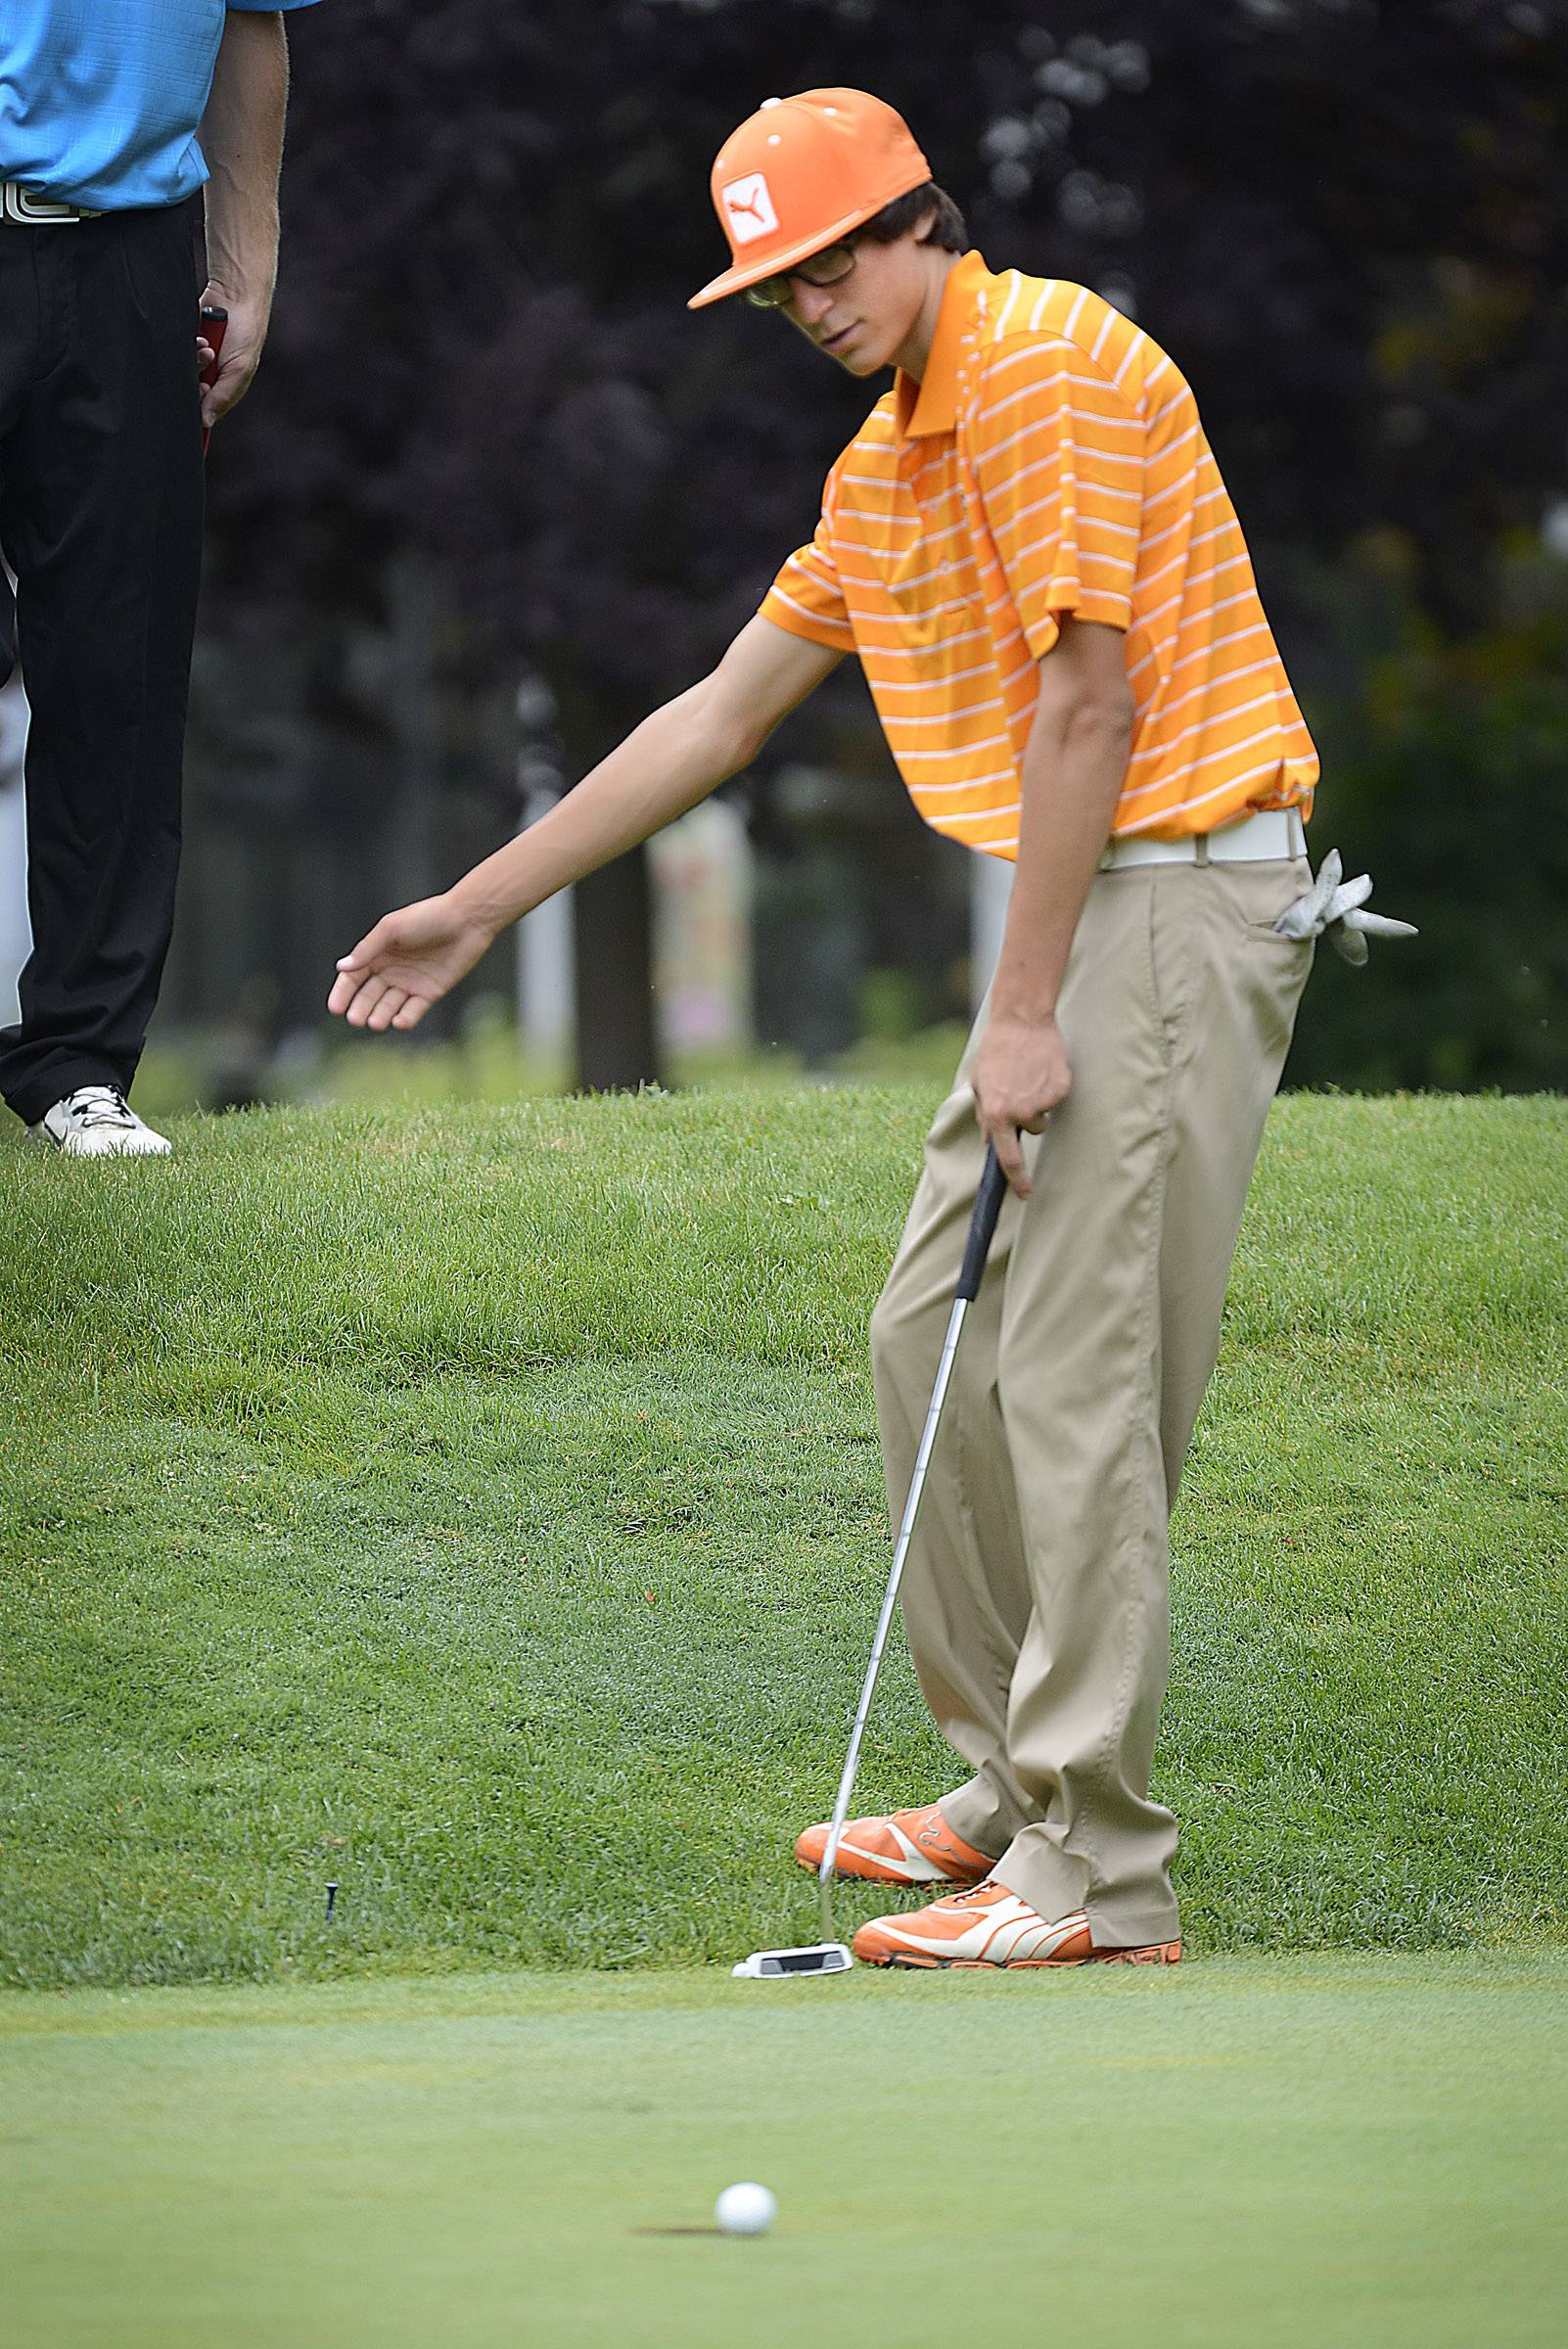 St. Charles East's Ronnie Griggs coaxes a putt Monday during the McChesney Cup at the Geneva Golf Club in Geneva.